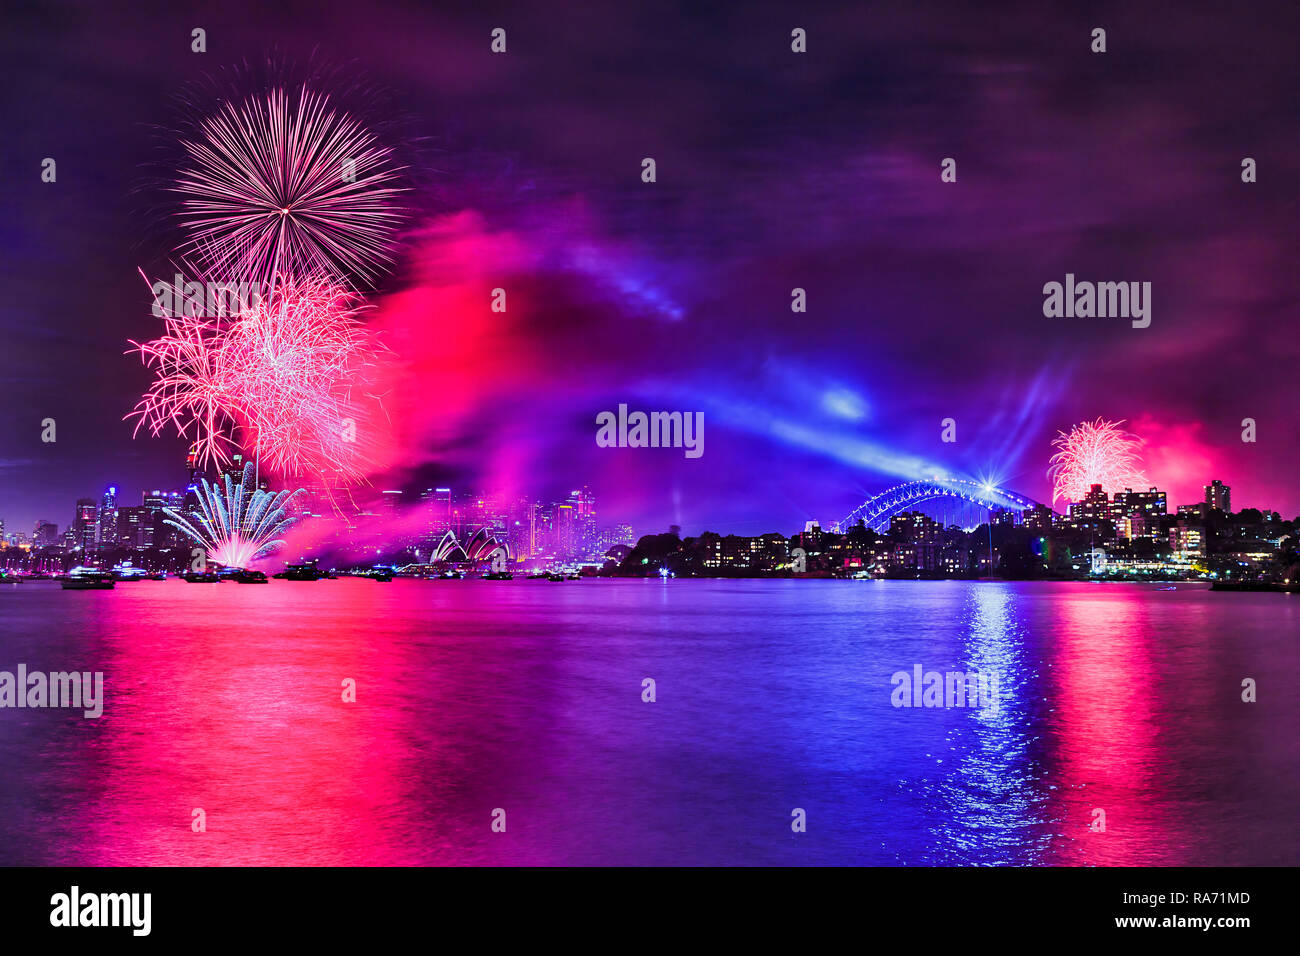 New Year Fireworks in Sydney city over CBD howers and major city landmarks when bright colour light balls reflect in still waters of Sydney Harbour. - Stock Image